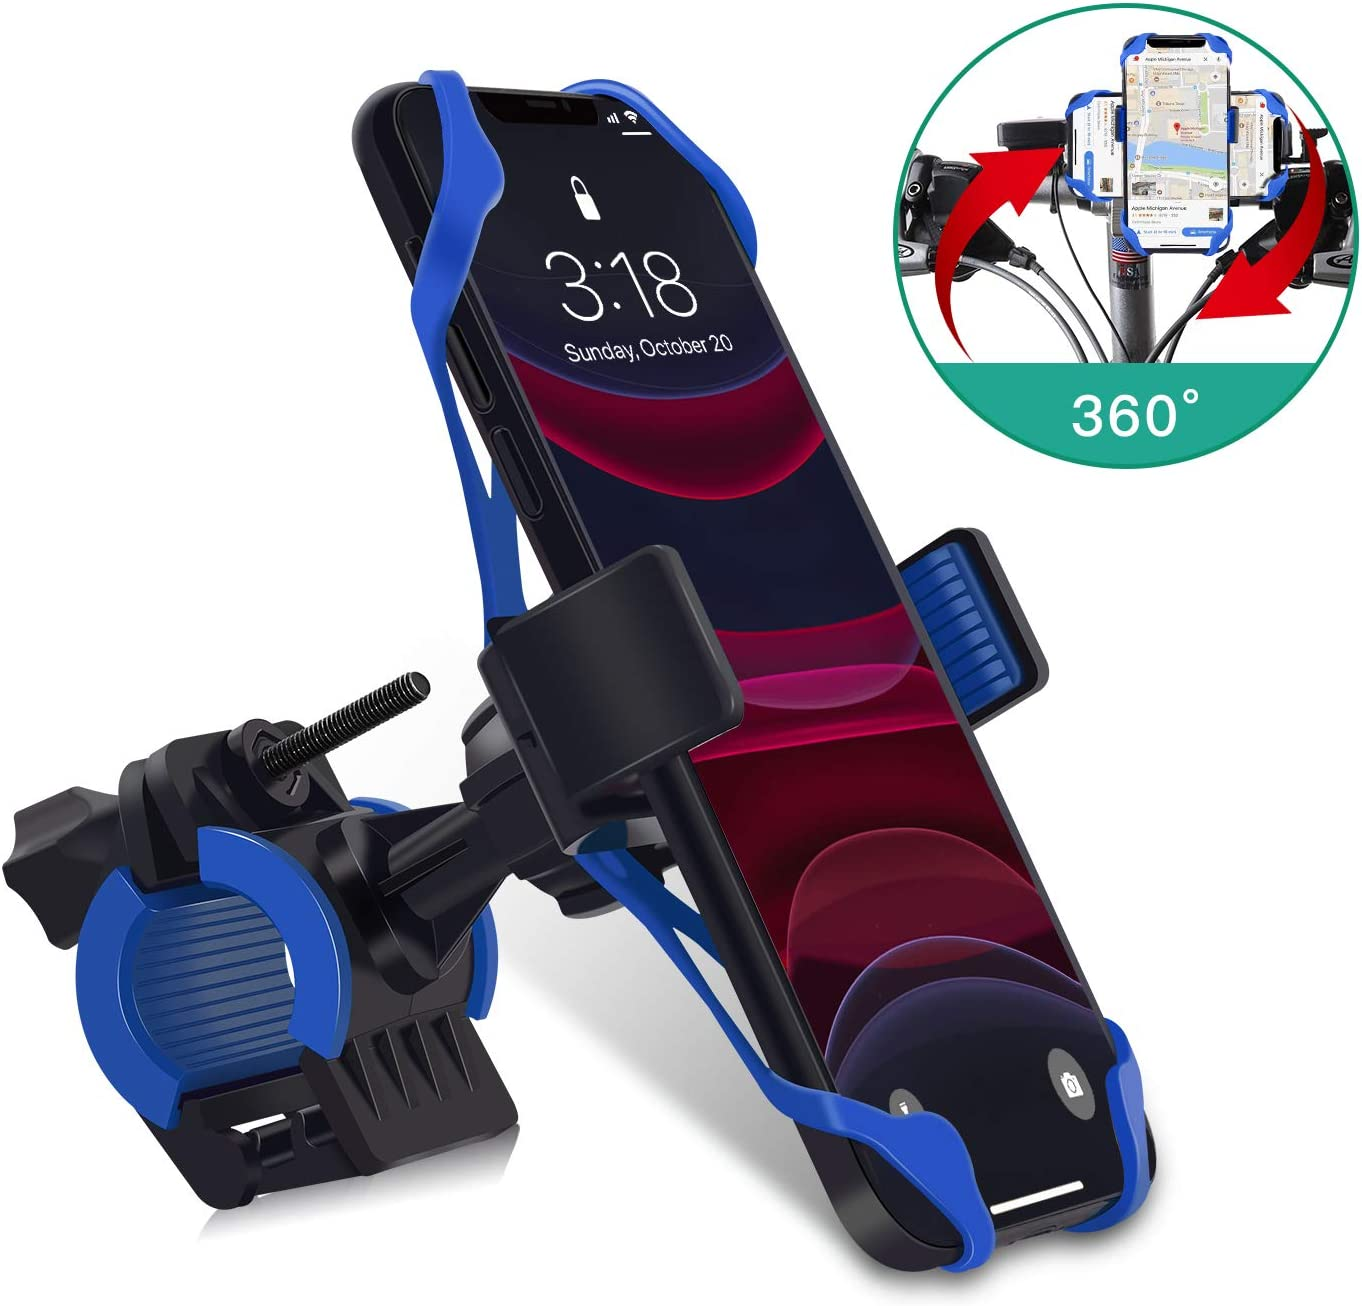 LATSKGN Bike Phone Mount 360° Rotation Universal, Bicycle Motorcycle Phone Mount Holder Stand Cradle Clamp for iPhone X/XR/XS MAX/8/7/6 Plus, Samsung Galaxy S10/S10e/S10/S9 Plus